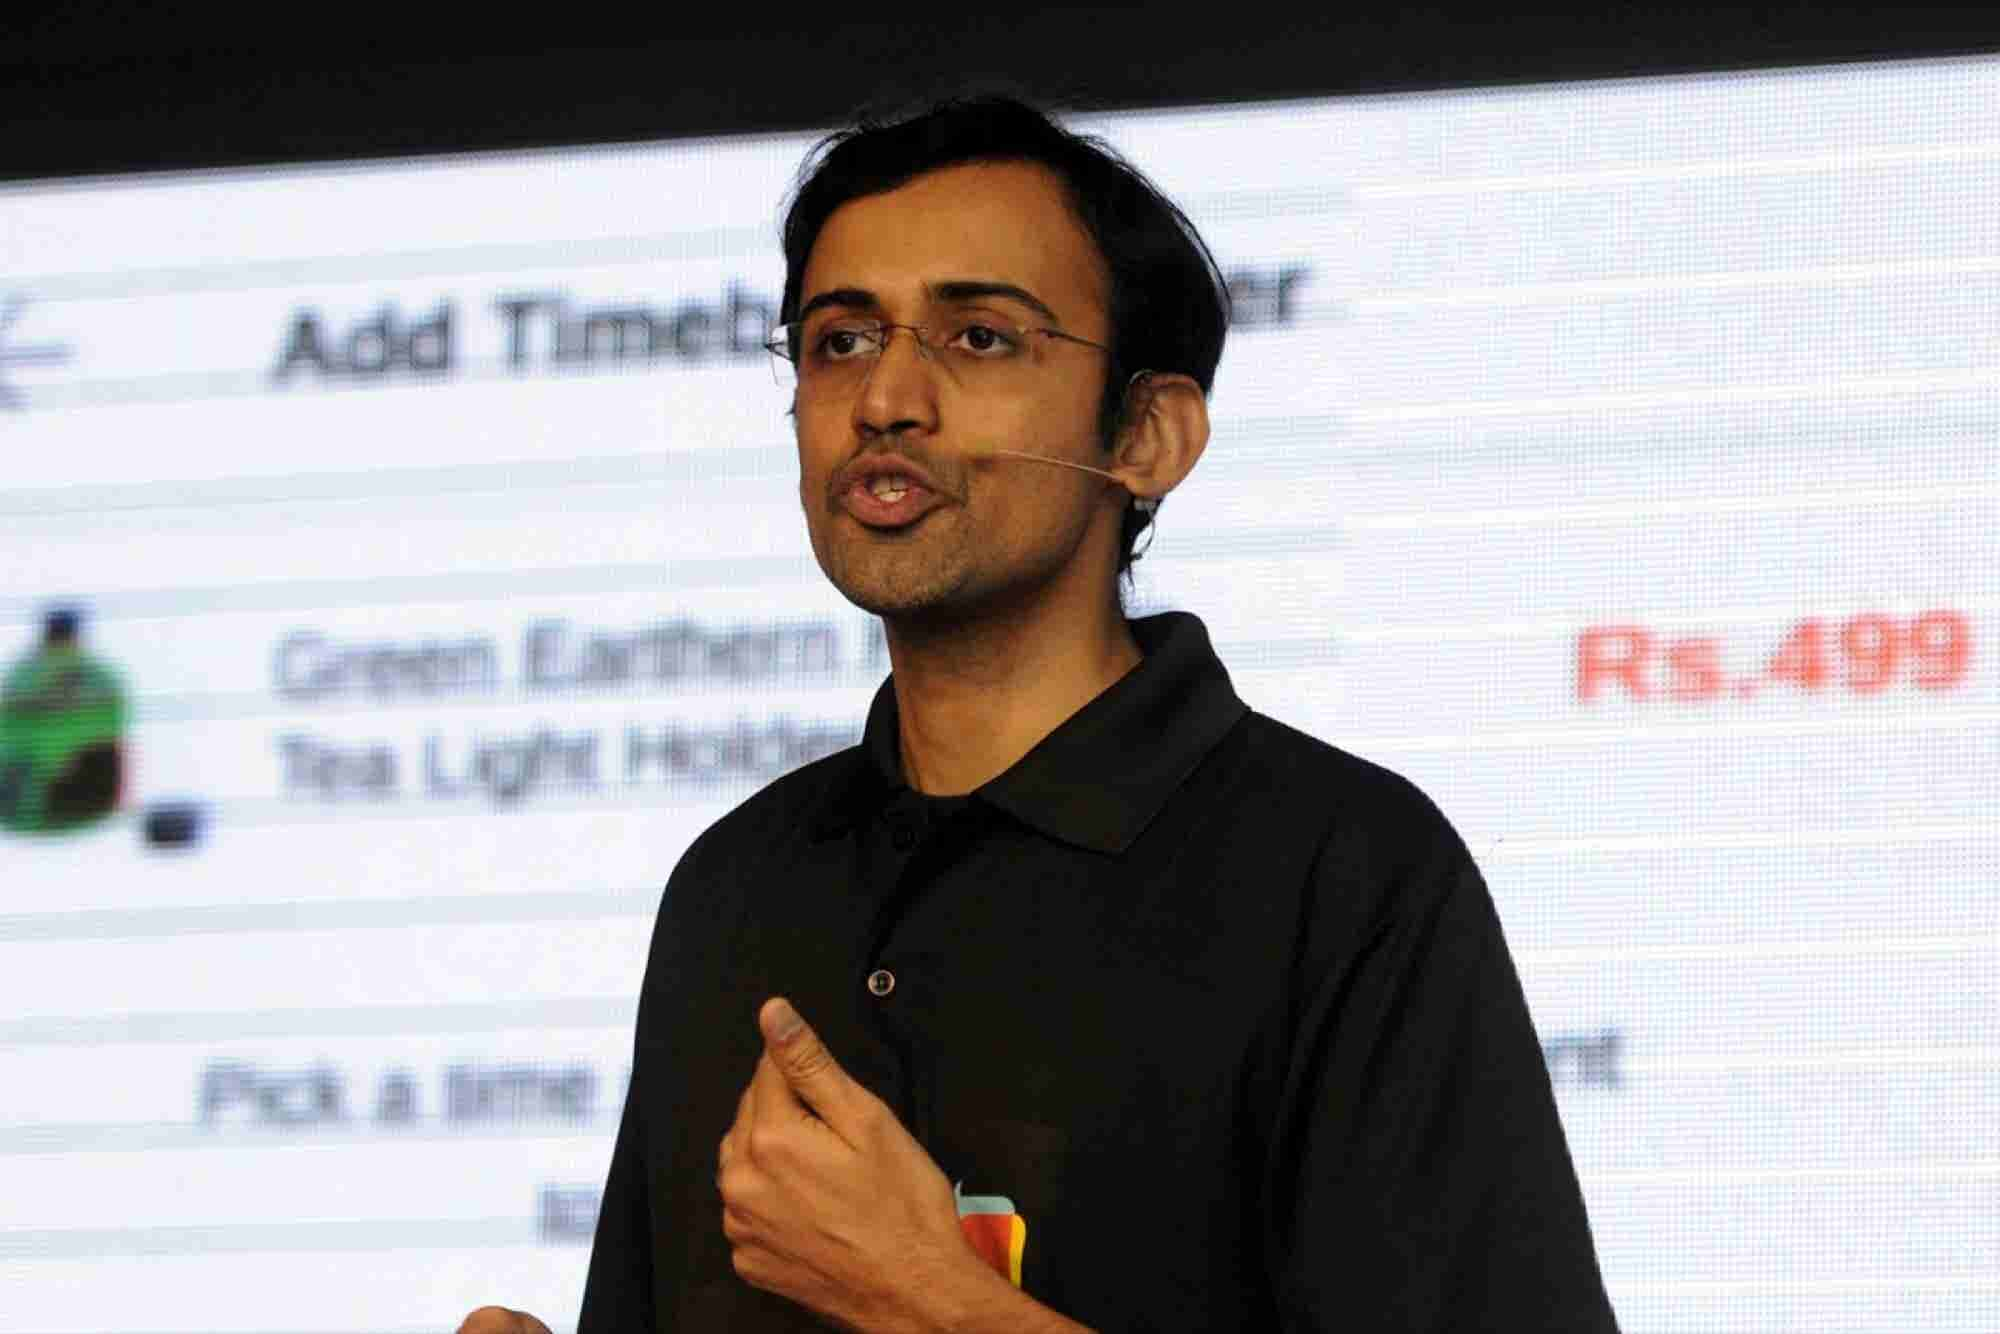 The Evolution of Bots: An Interview with Facebook Messenger's Anand Chandrasekaran